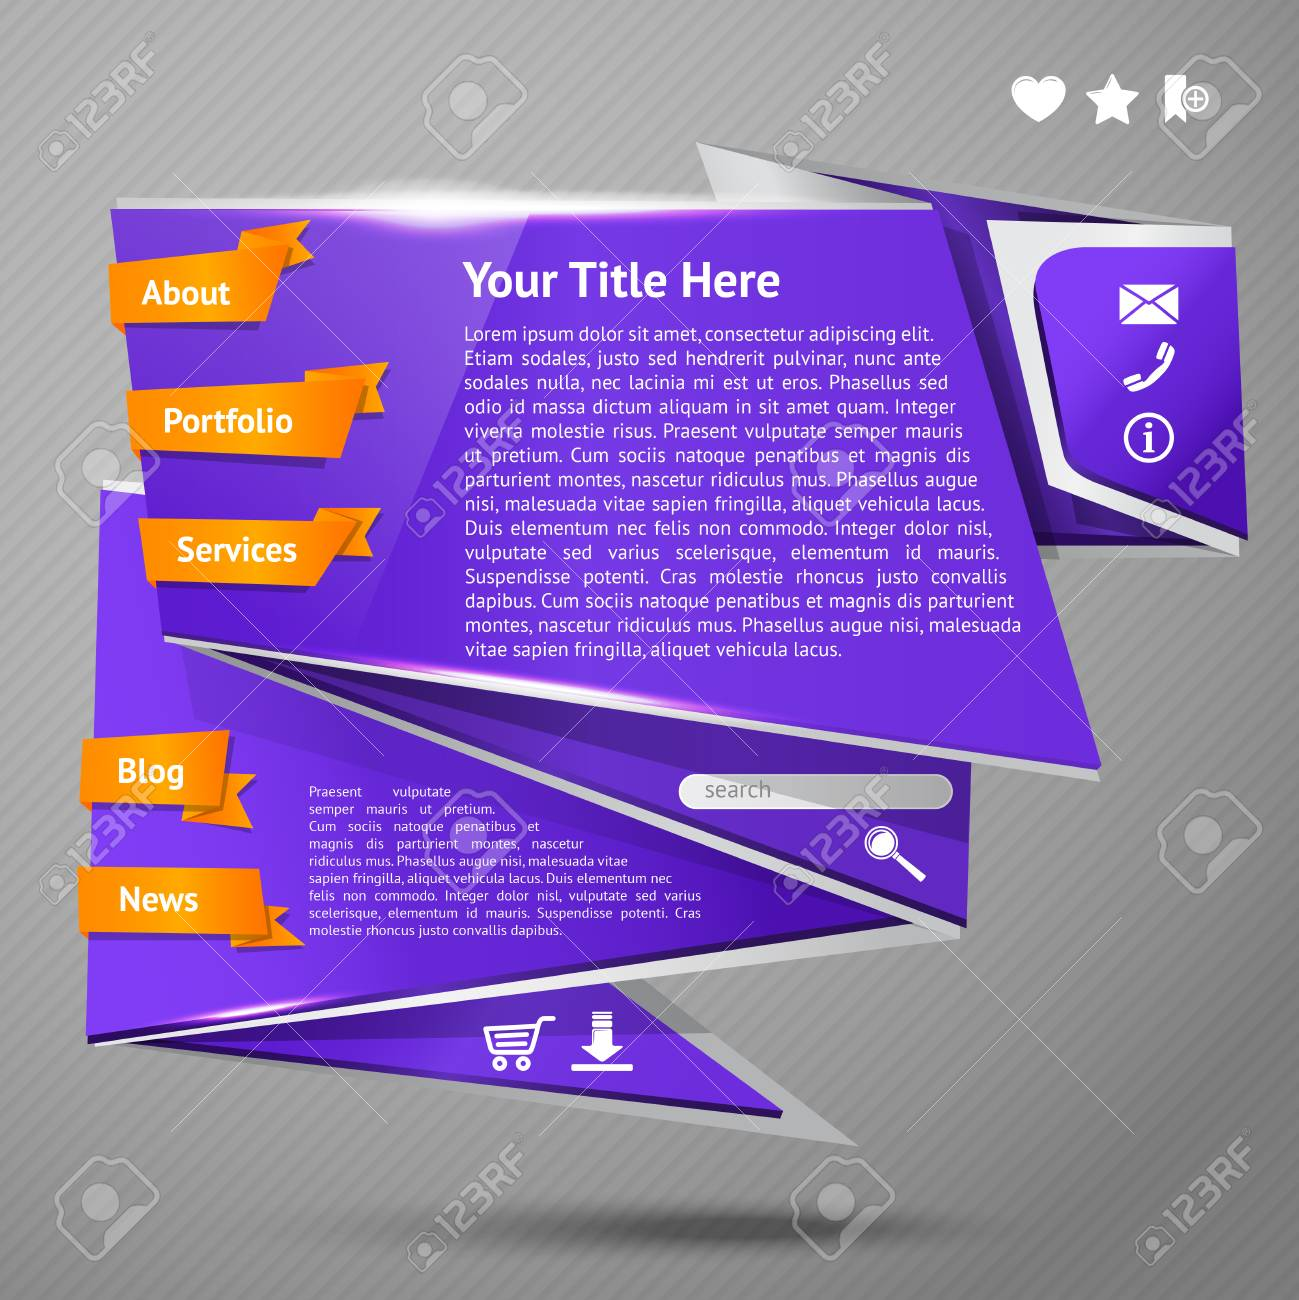 Blue original origami paper website page design template vector illustration Stock Vector - 28136920